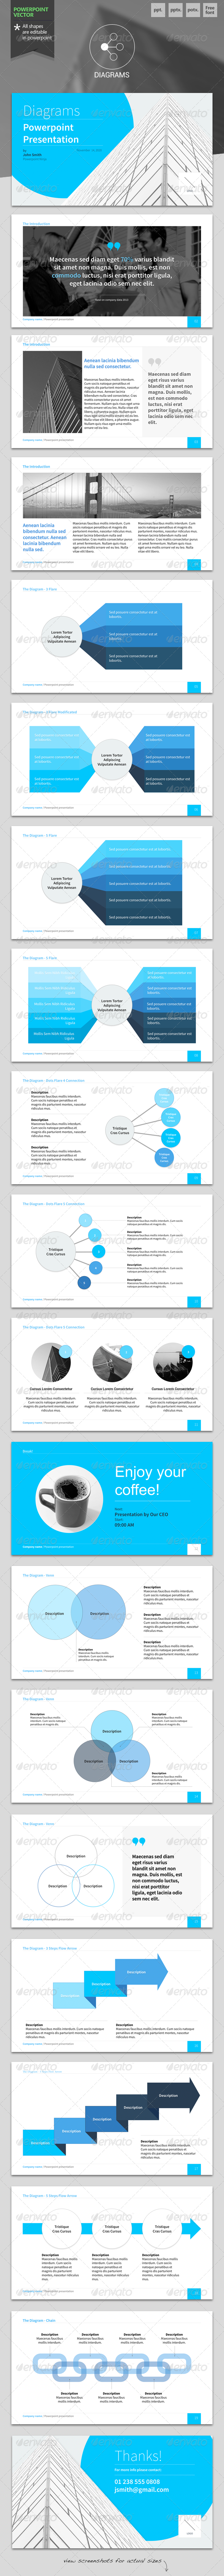 GraphicRiver Diagrams Powerpoint Template 6118326